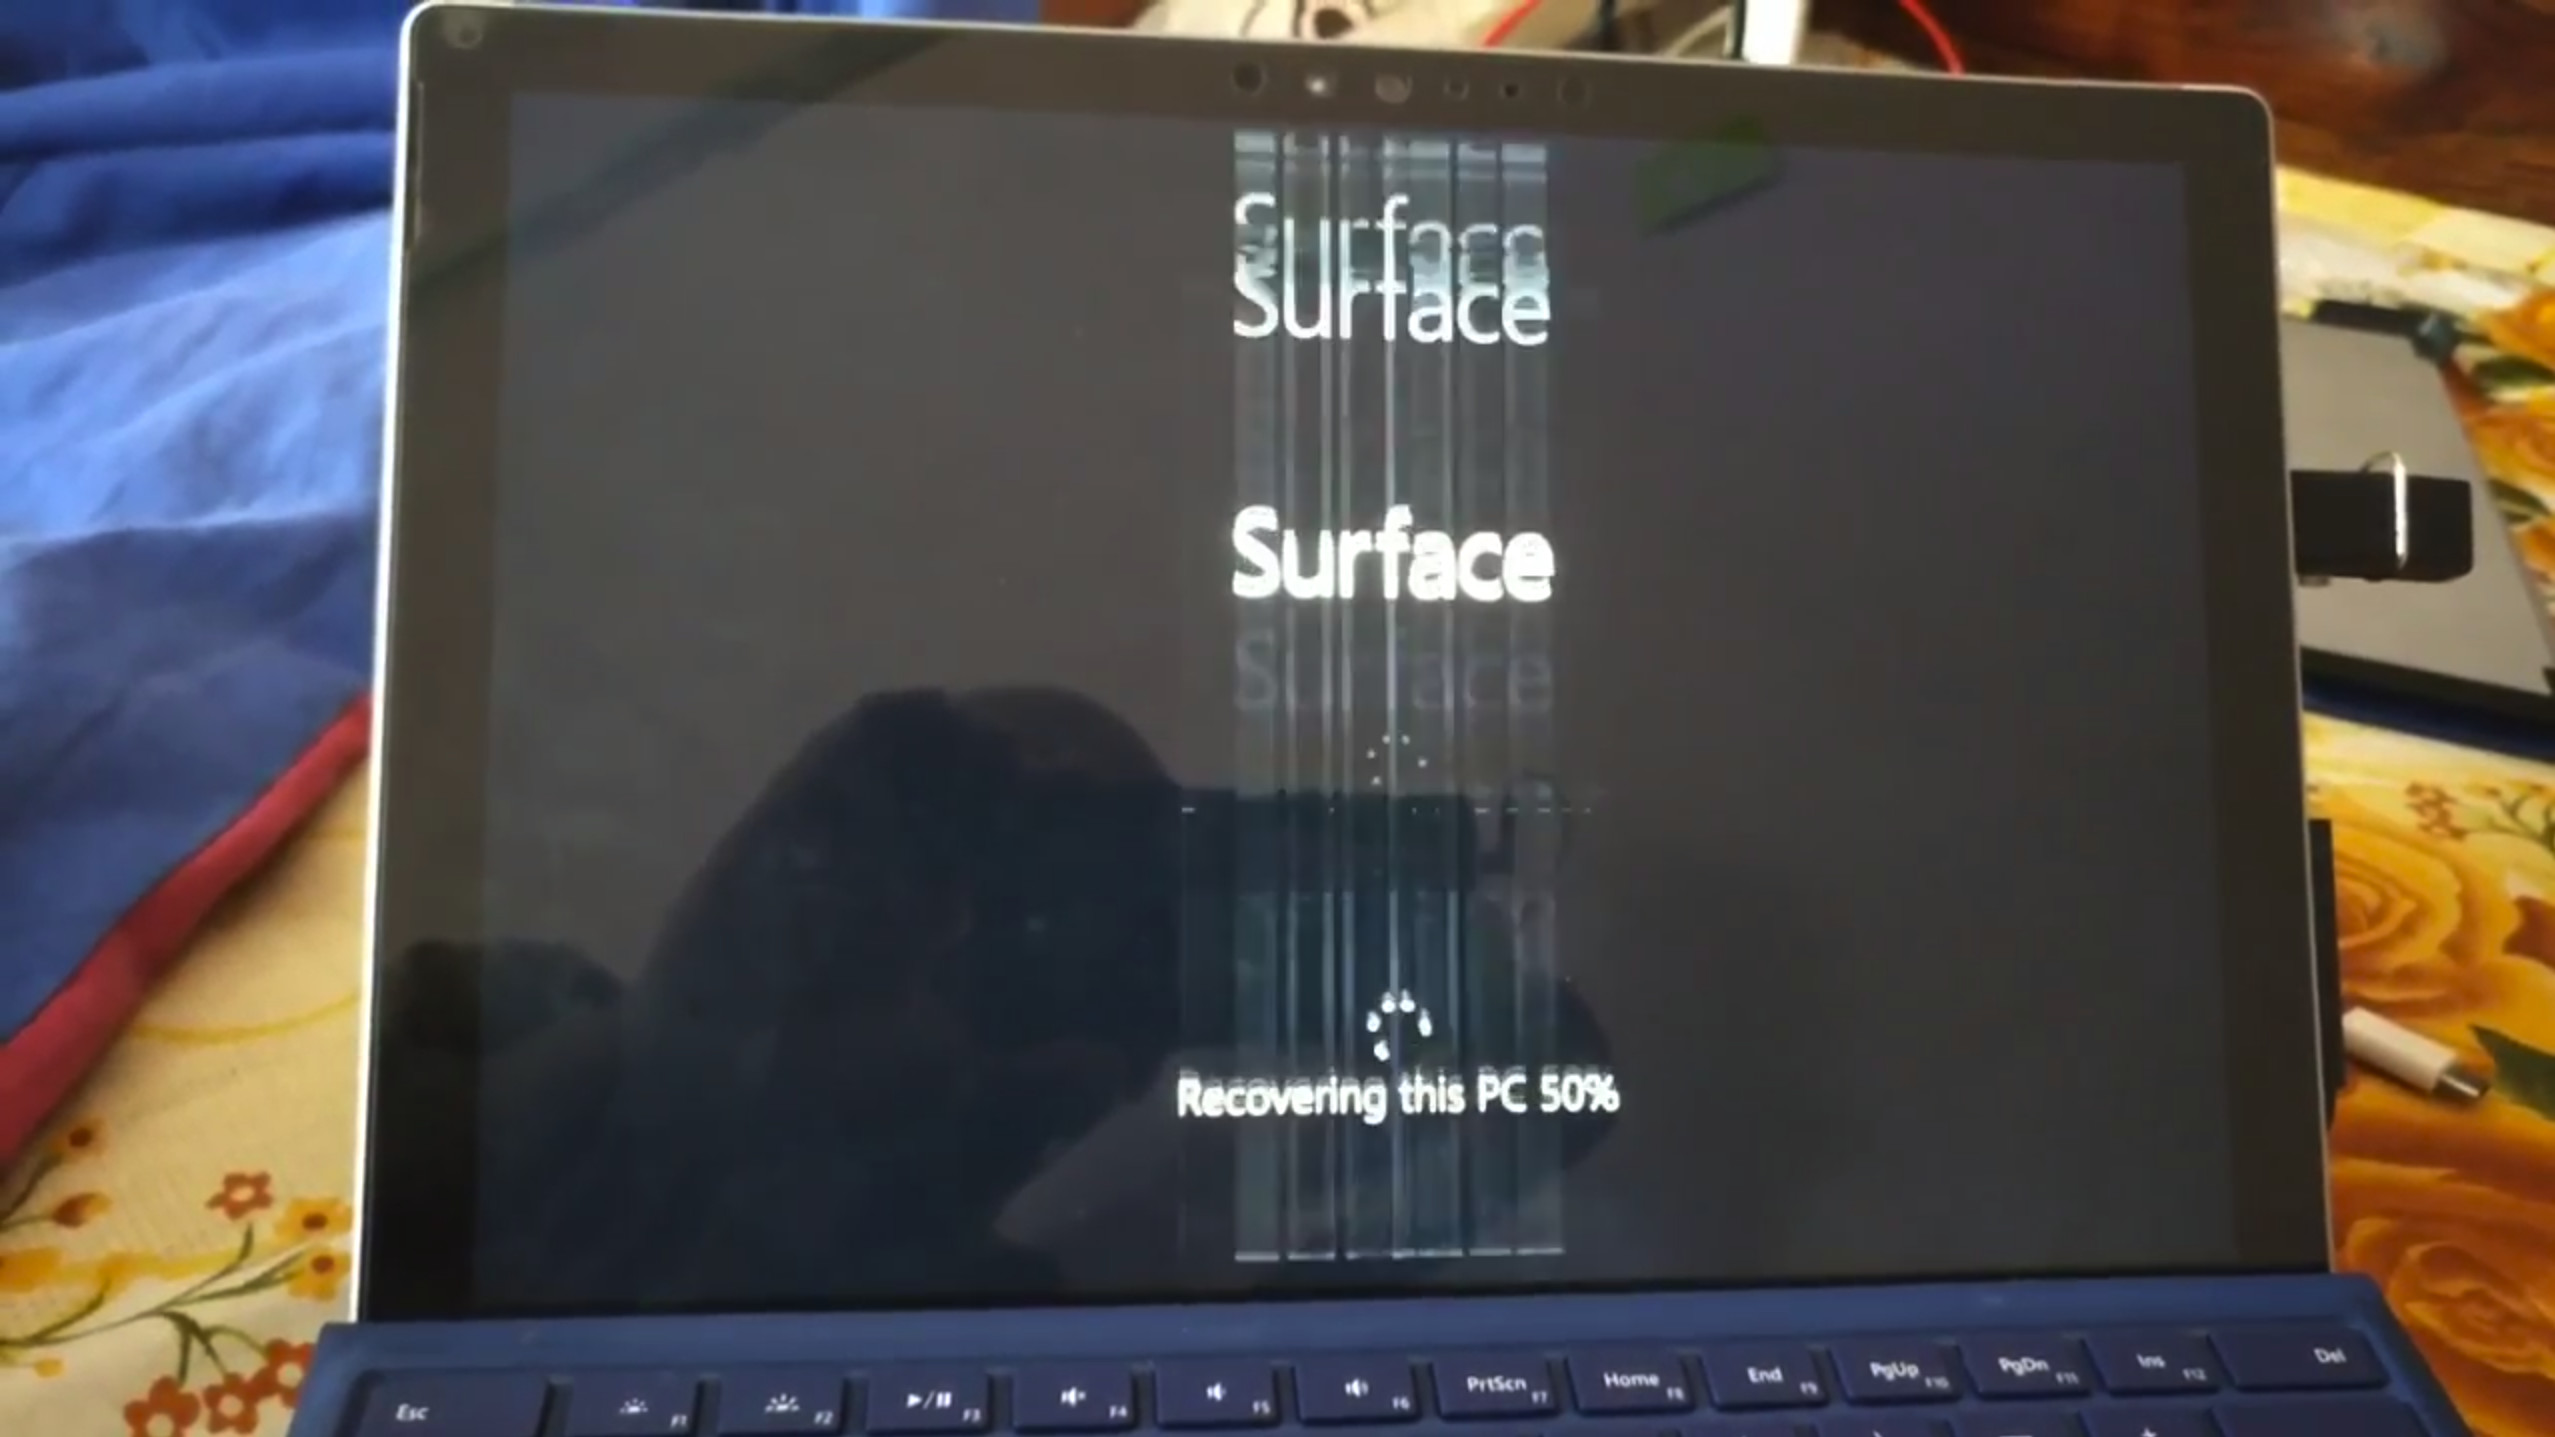 Surface Pro 4 owners being effected by screen flickering issues